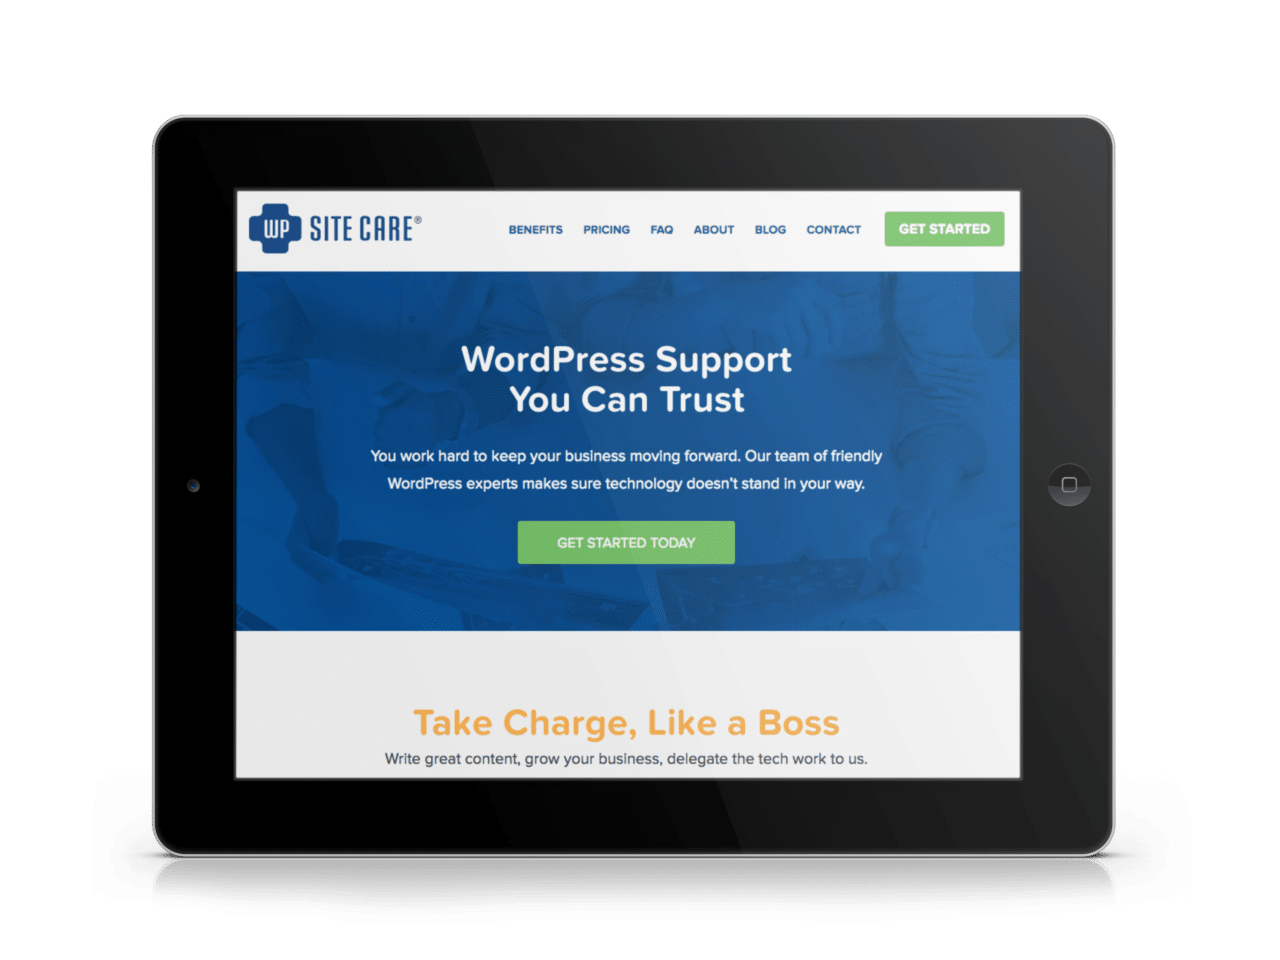 WP Site Care | WordPress Support Plans | Southern Web